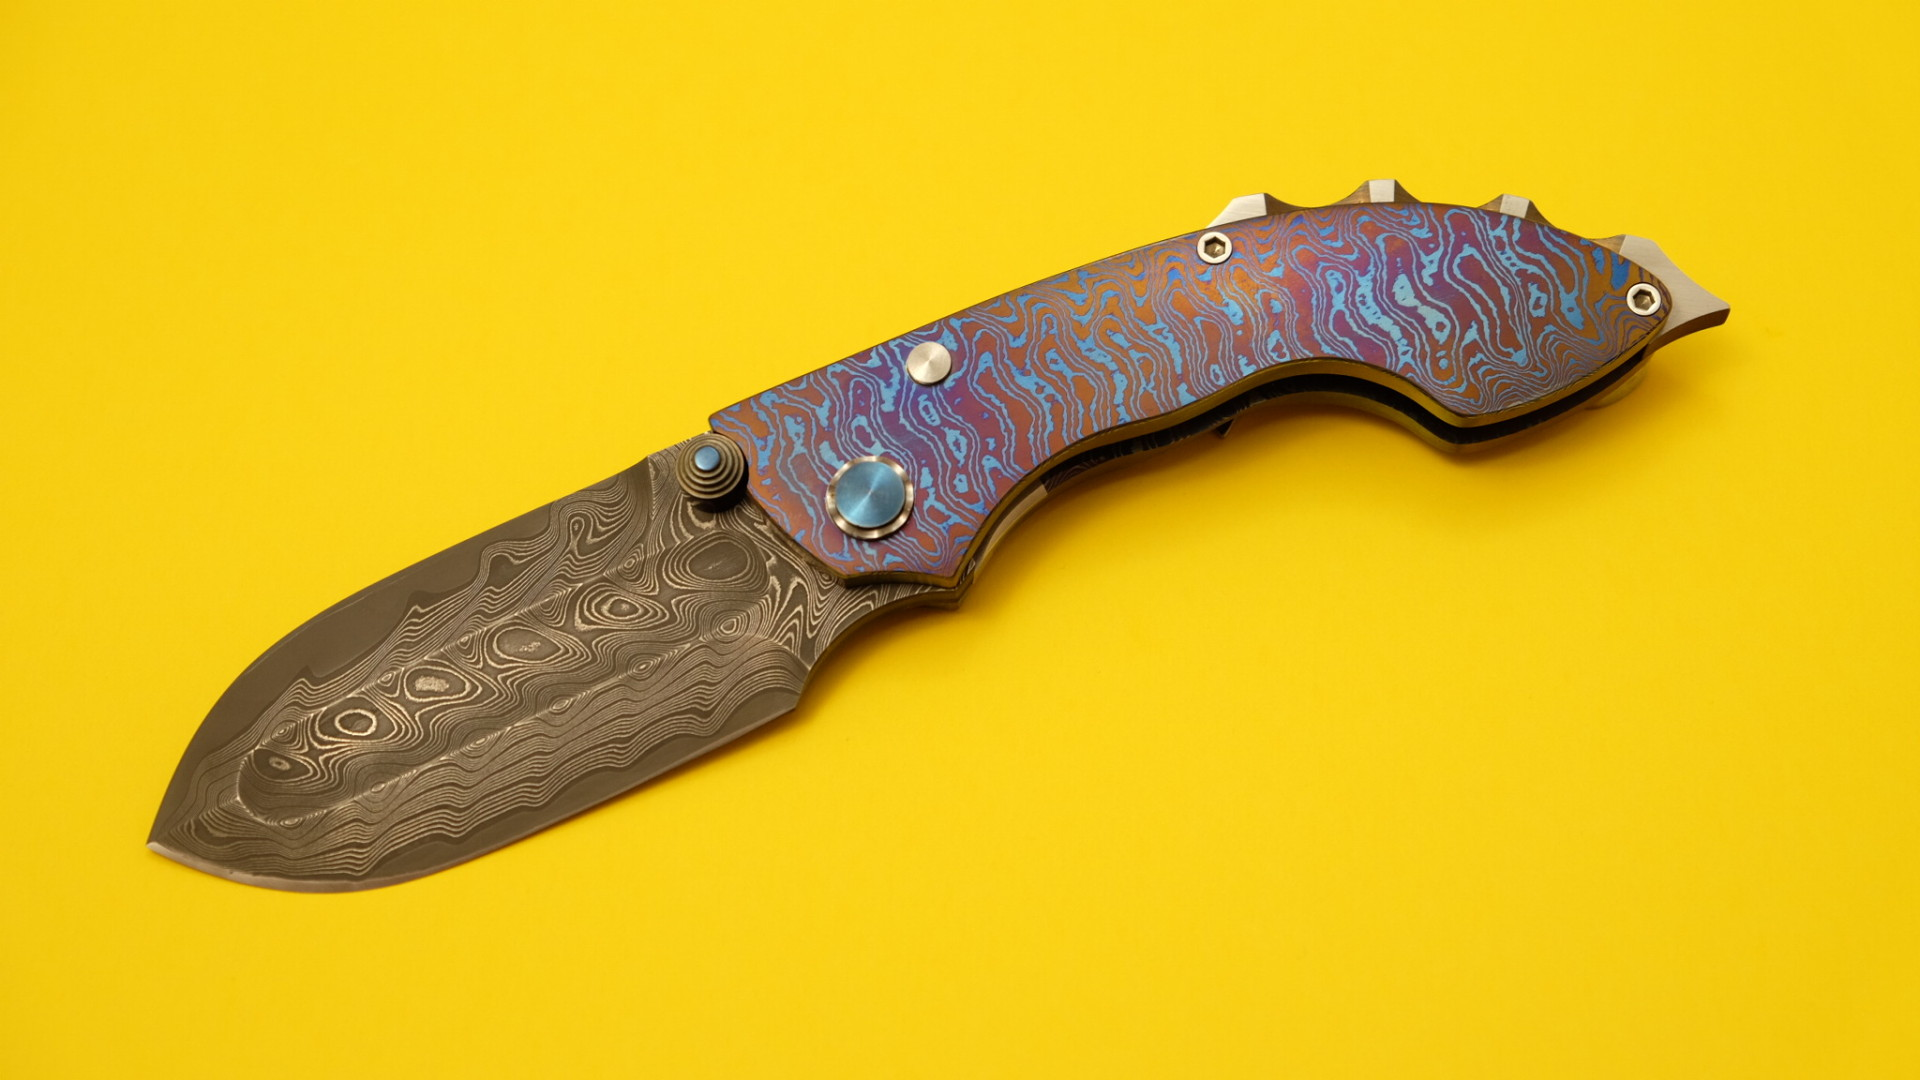 Phil Harvey custom knife - Gladius Exoticus